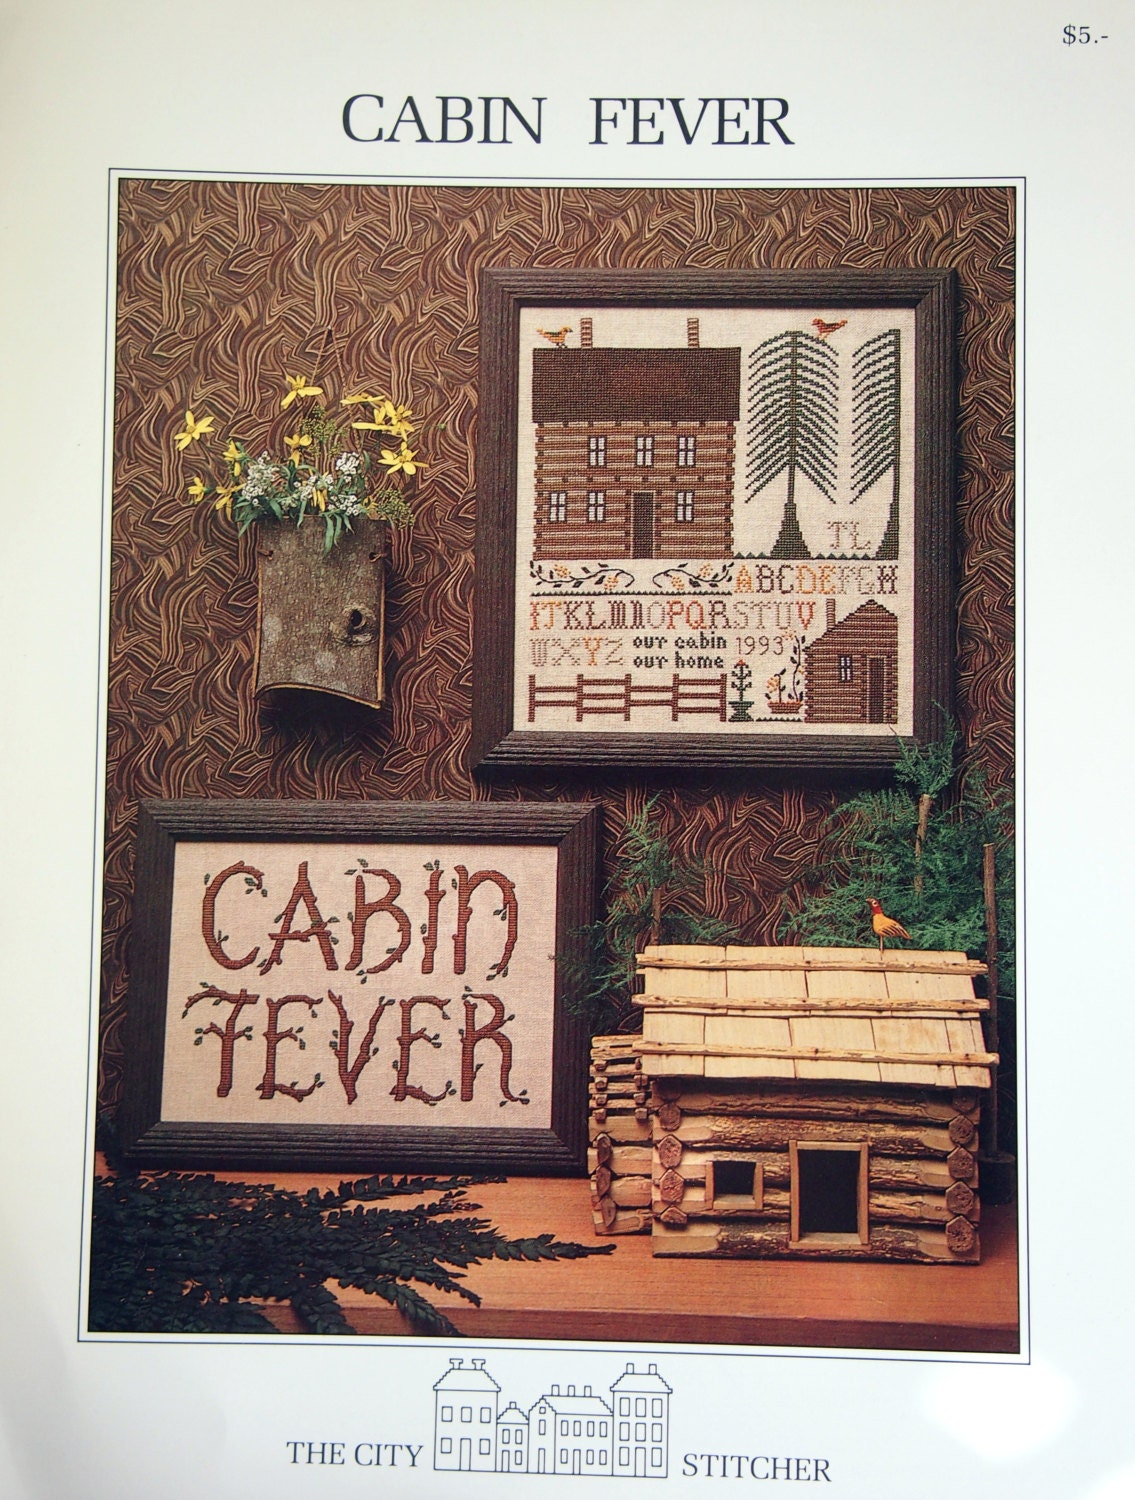 Very Impressive portraiture of Cabin Fever By The City Stitcher Vintage Cross by NeedANeedle with #955336 color and 1135x1500 pixels